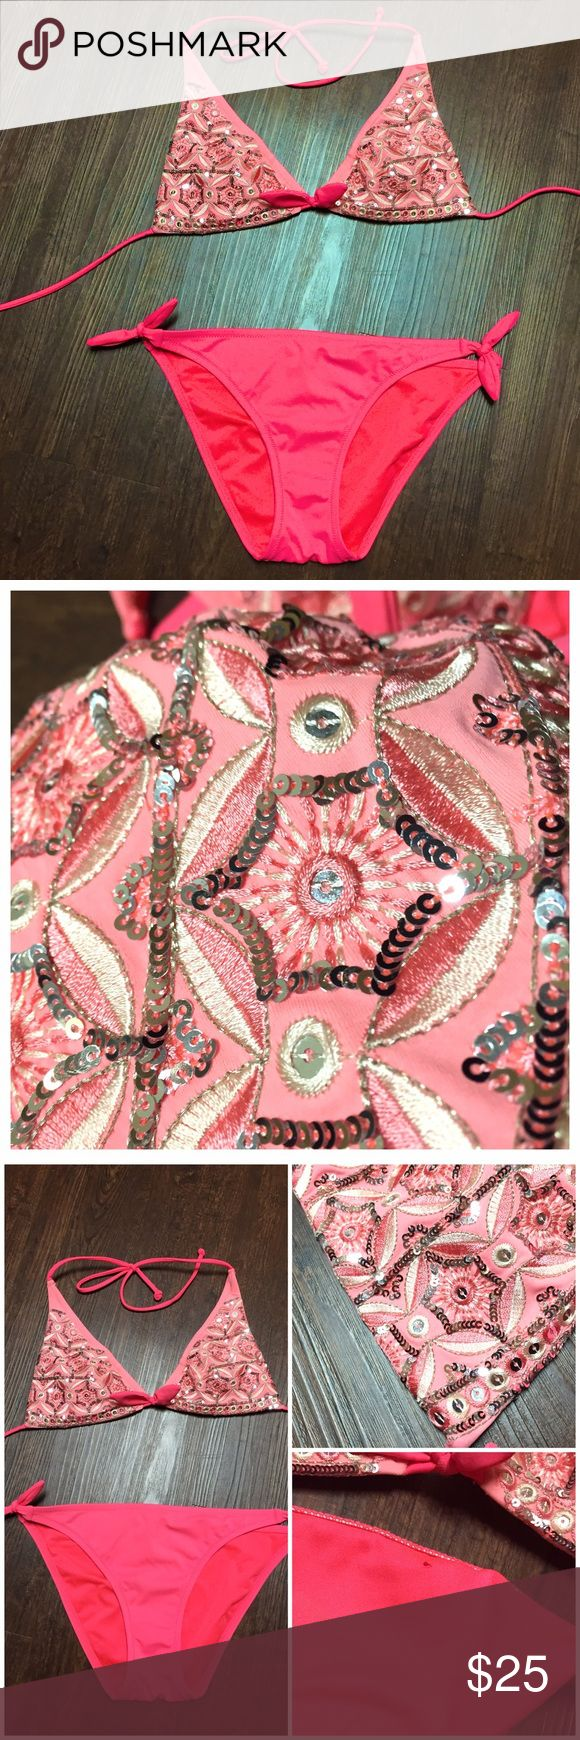 Pink Embroidered Sequin Bikini Beautiful Victoria's Secret swimsuit. Top & bottoms are size M but adjustable. I'm a small and it fits. The top is best for a full B/ C cup. I cut the tags out from both.  From the Beach Sexy collection. The top is embroidered and embellished with silver sequins. In good condition with a few missing sequins barely noticeable. Inside cups were lost and not included. The bottoms are in great condition; only defect being a tiny hole on the inner lining shown in…